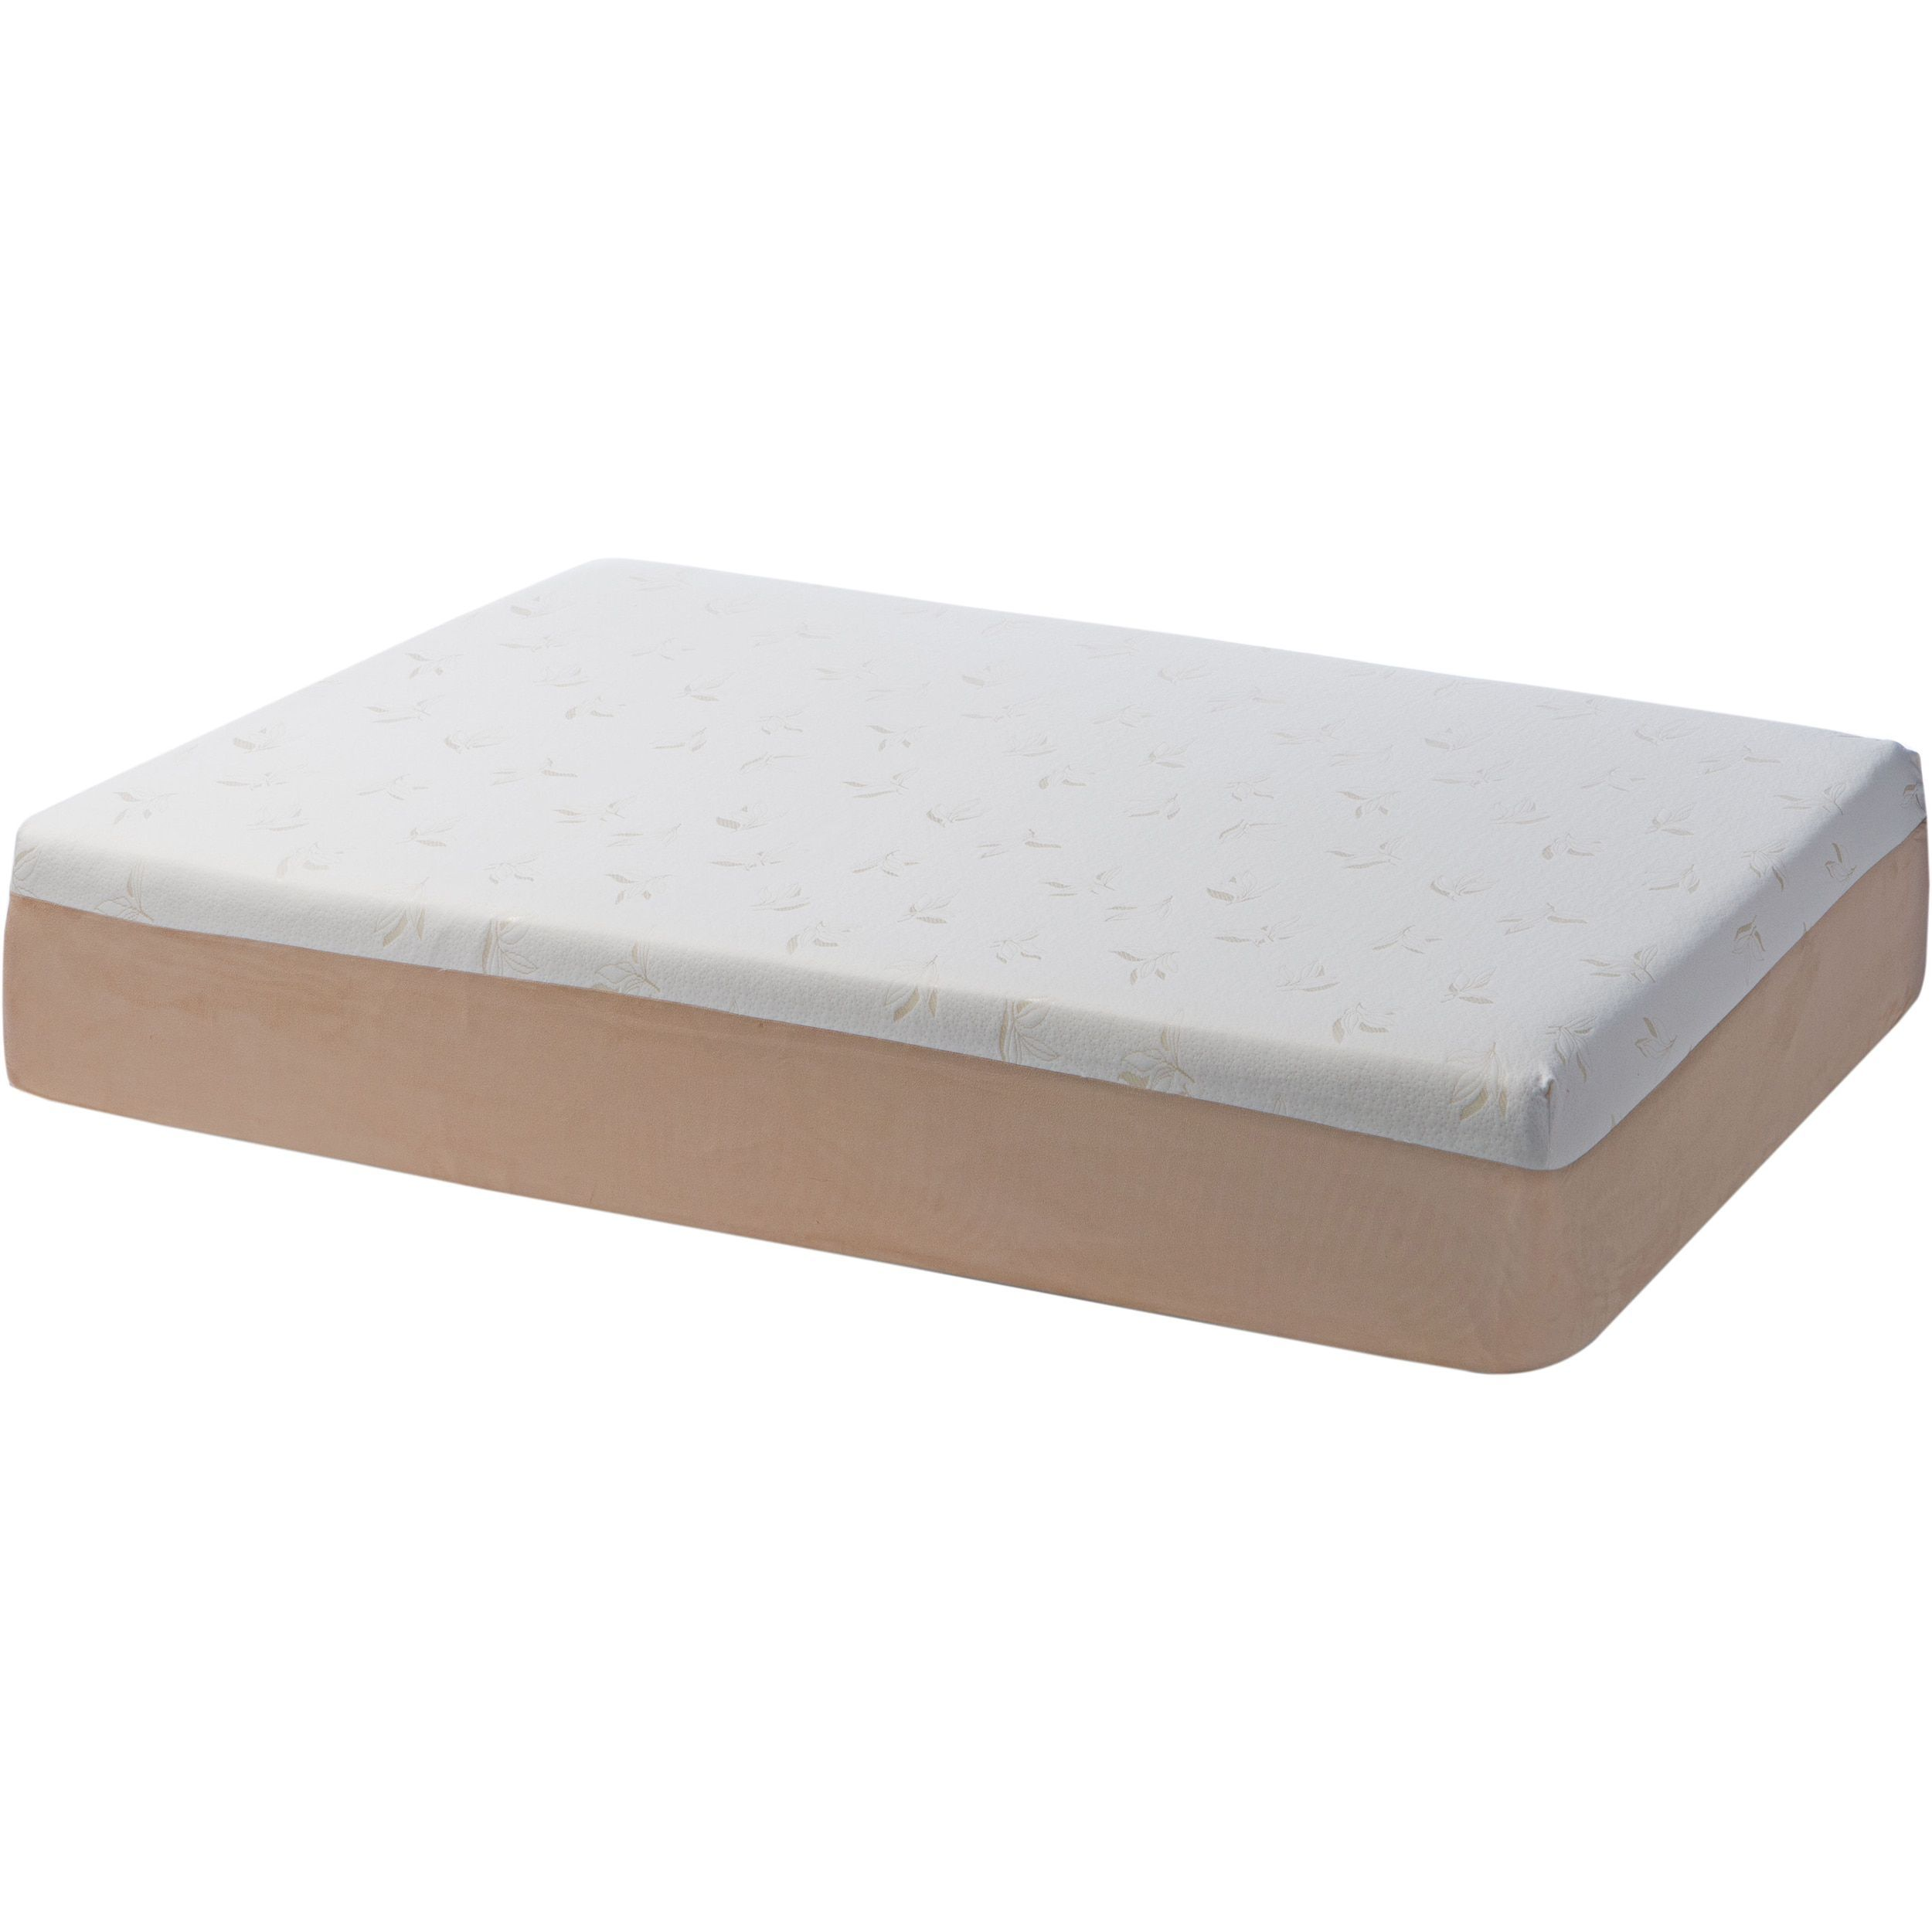 king easy pillow me good firm amerisleep dreams comfort bed latex foam sale sleepys pedic comforter near size sleep kingsdown mattress warehouse budget tempur company reviews memory costco best